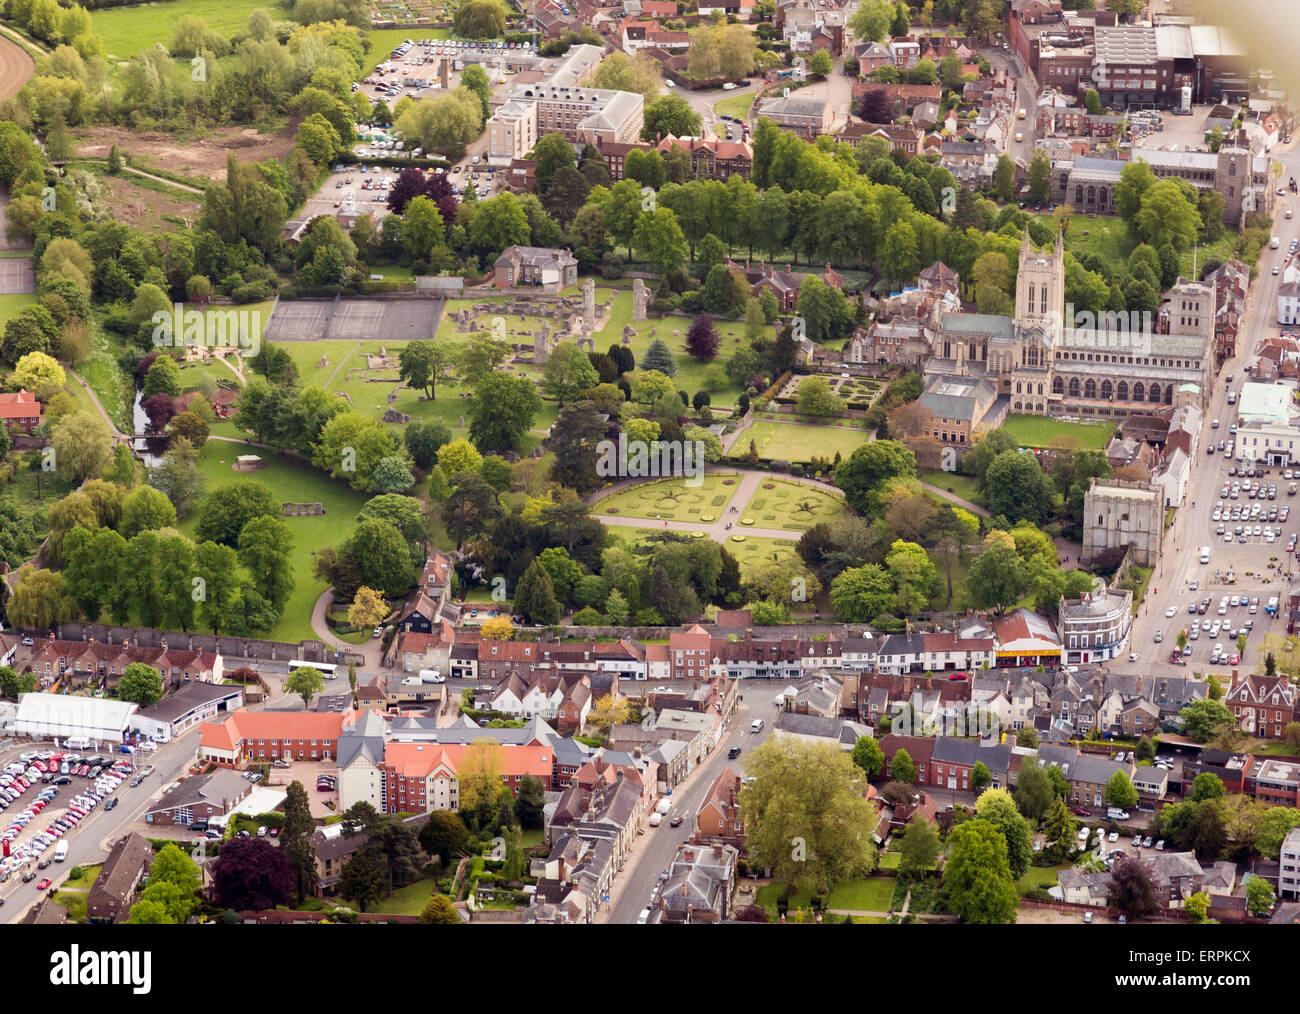 Aerial photo of Bury St Edmunds showing the Abbey Gardens Stock Photo